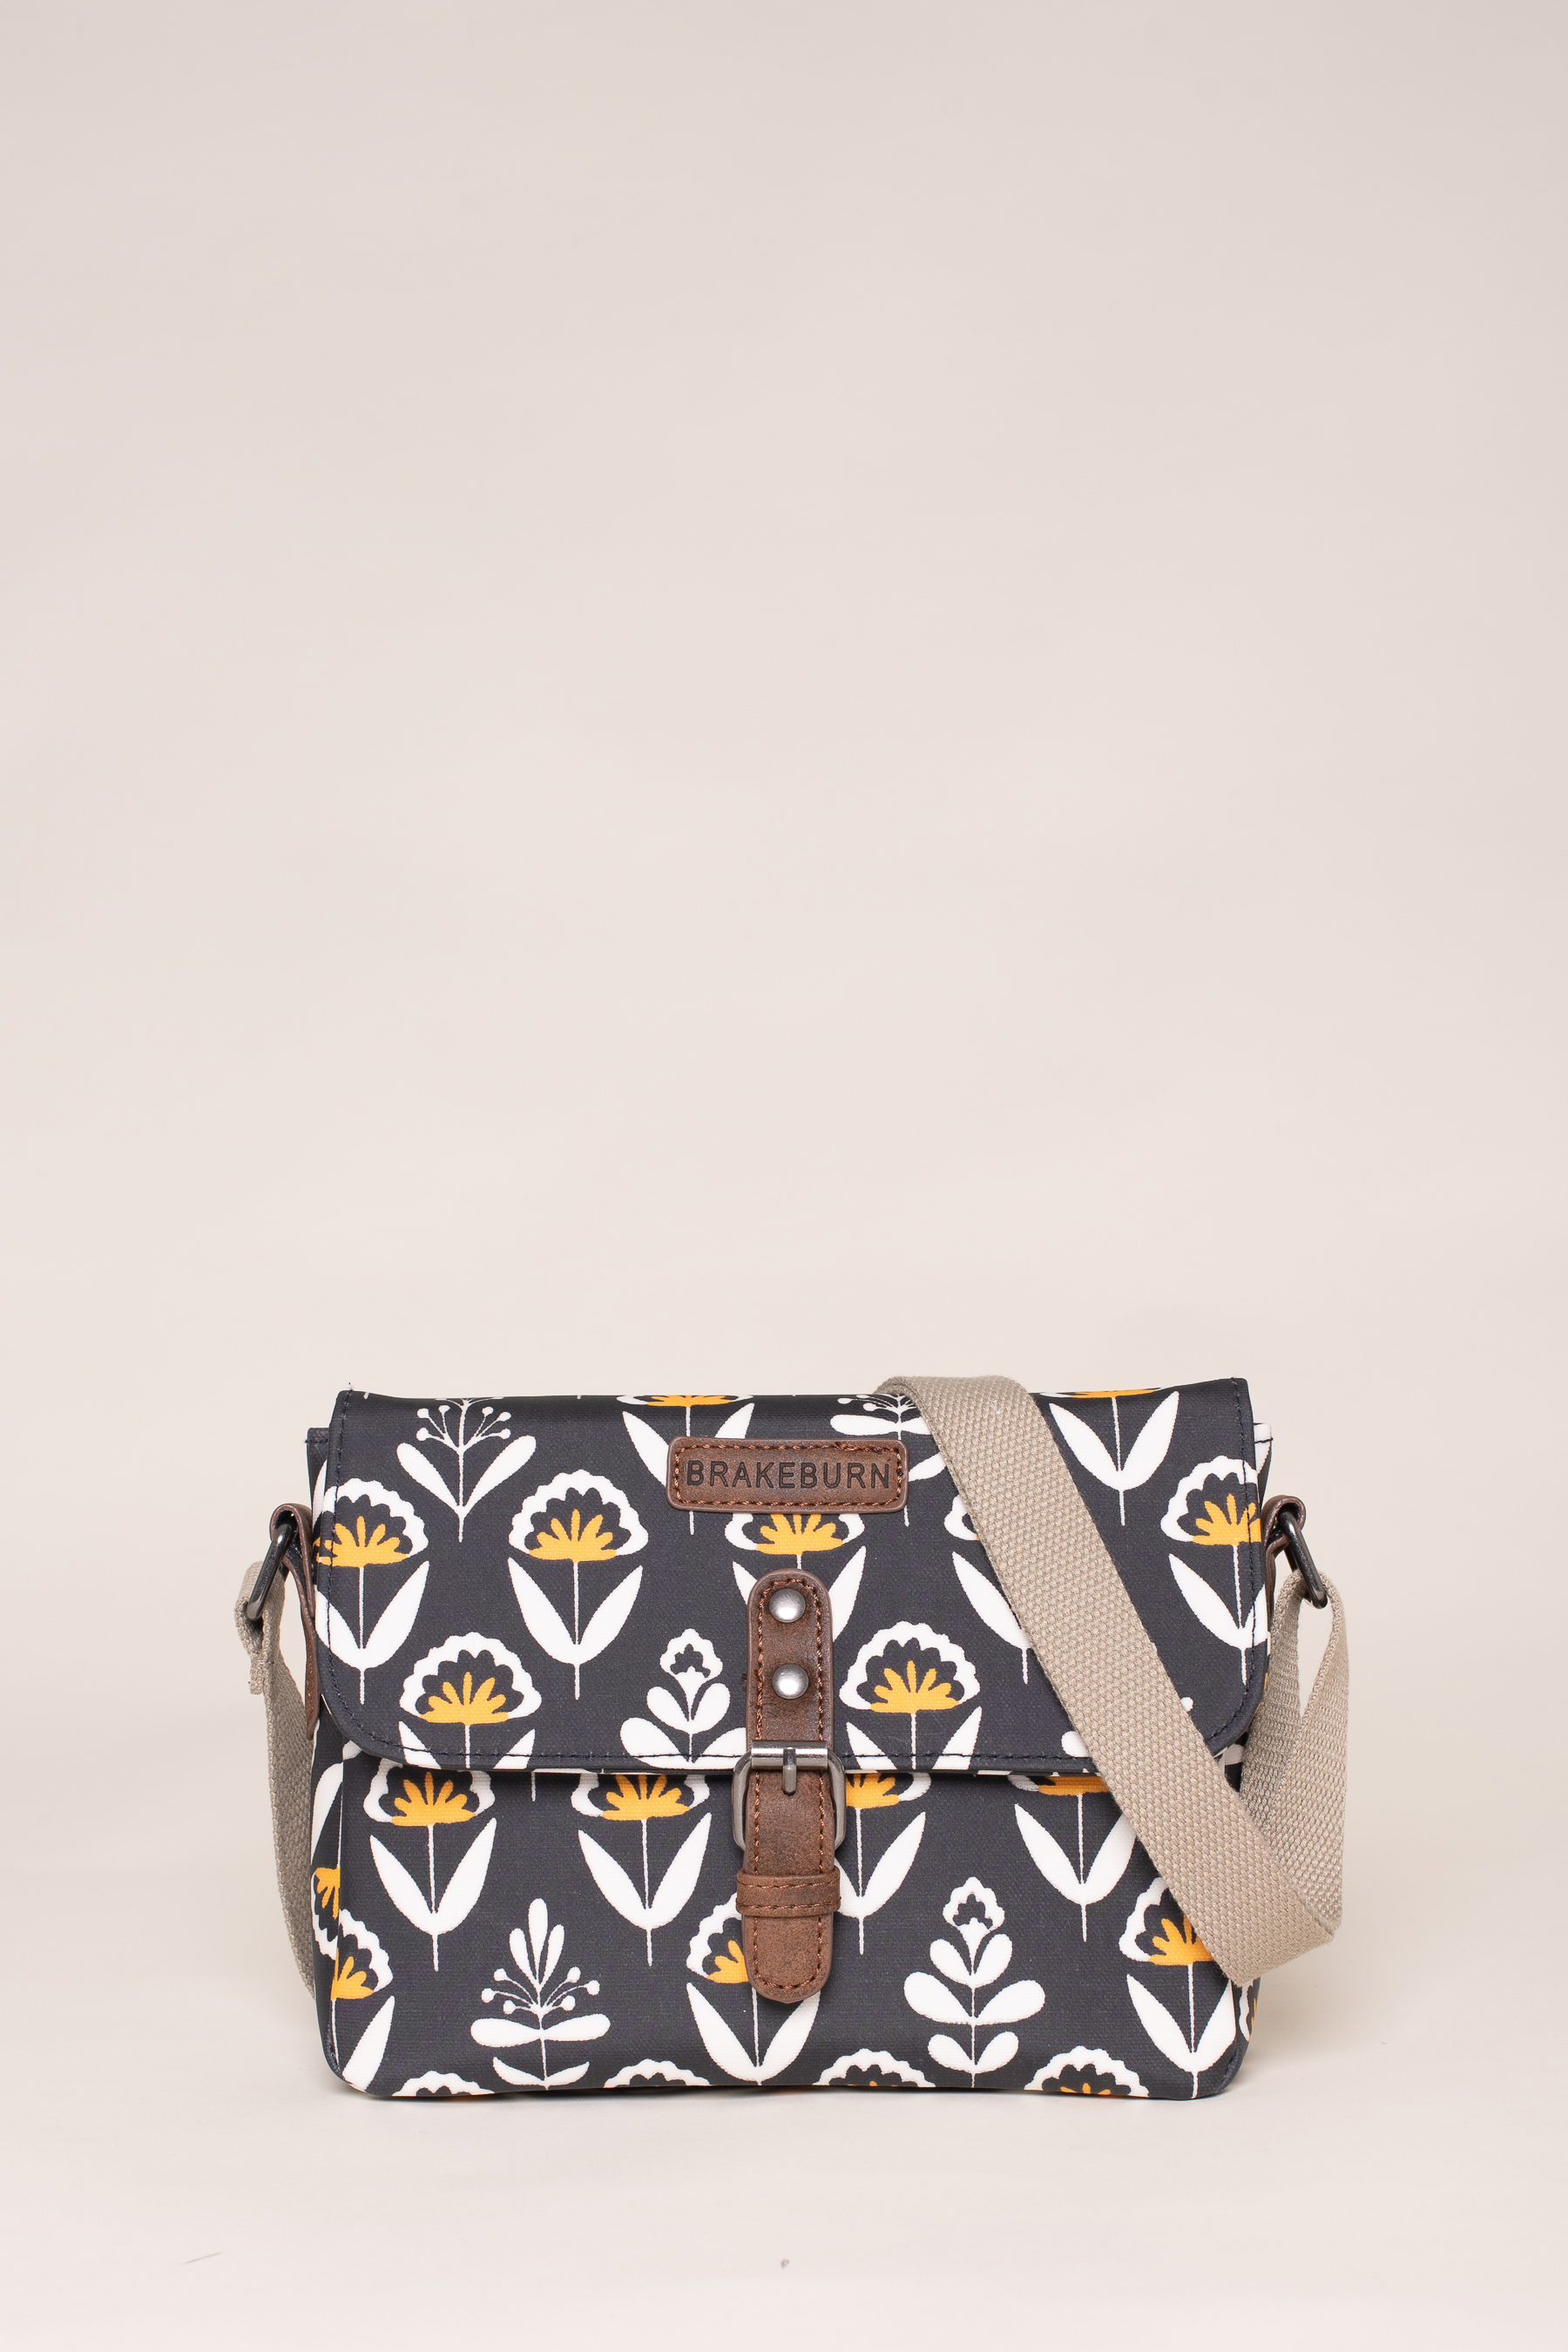 Brakeburn Geo Floral Roo Pouch Bag